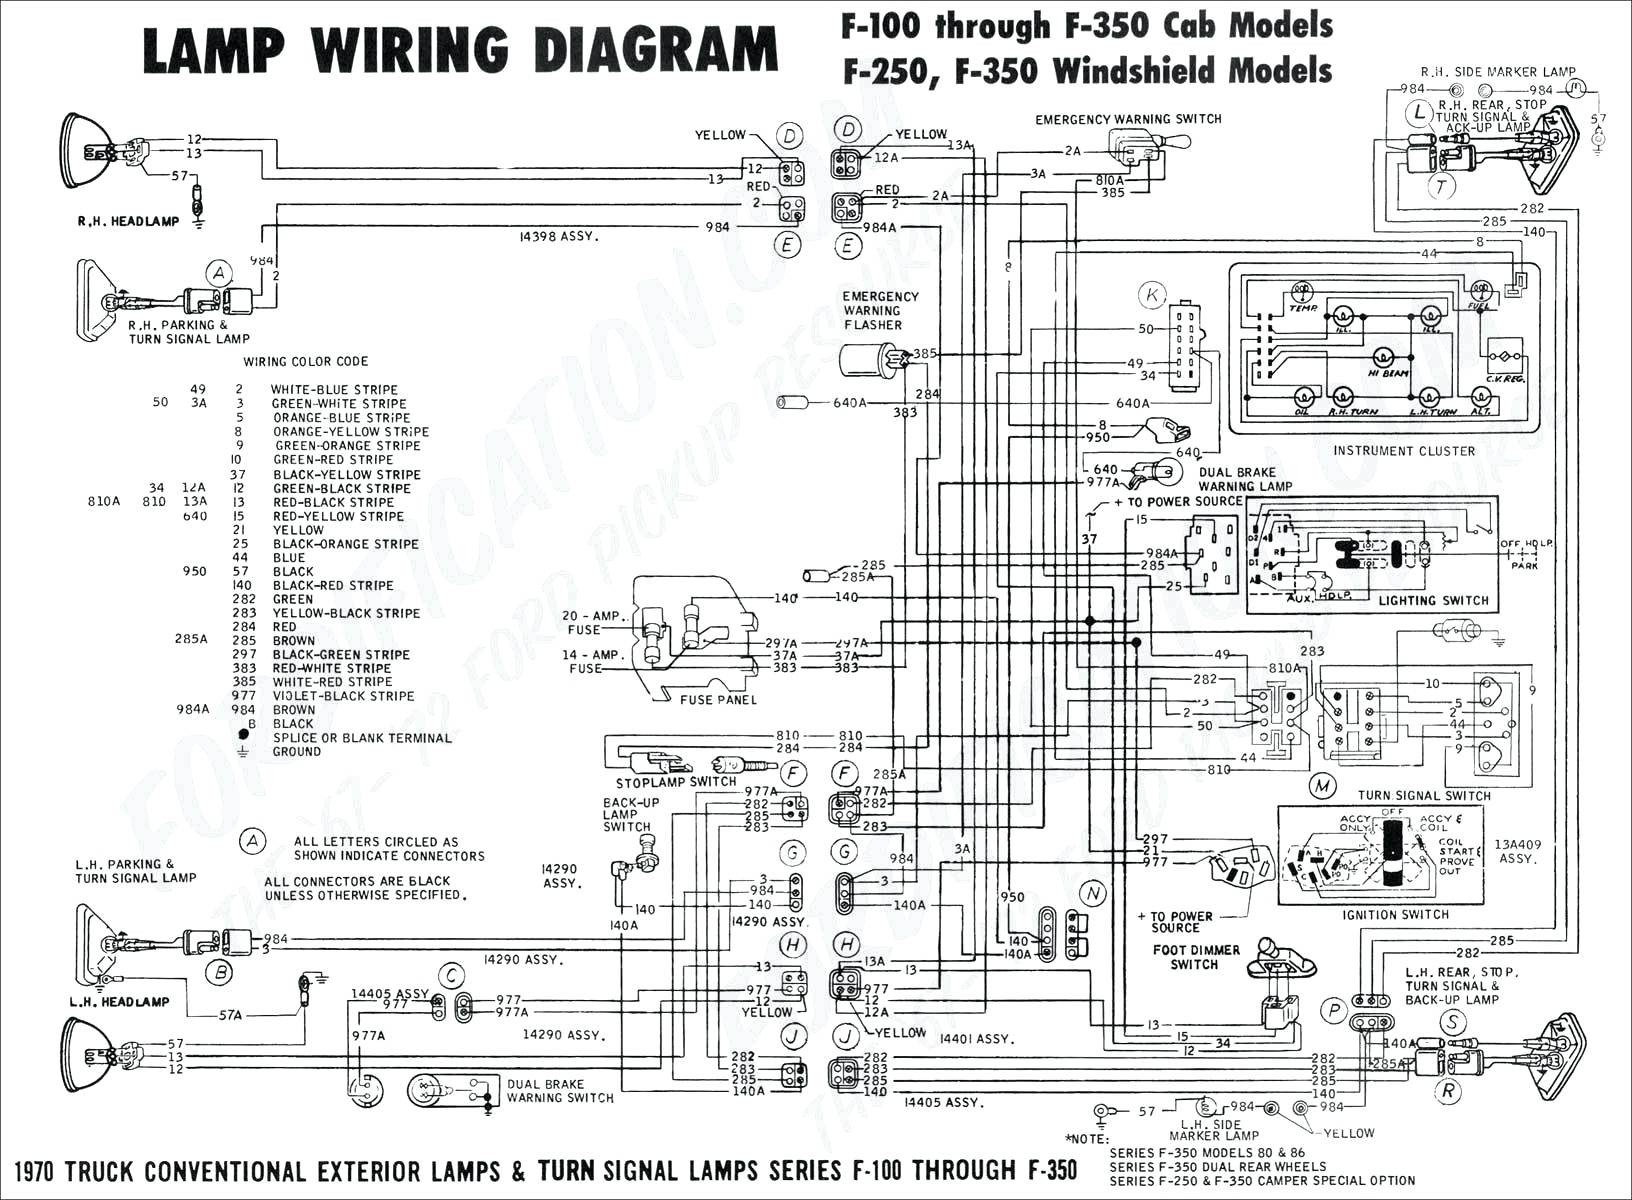 2015 Civic Wiring Diagram | Wiring Liry on